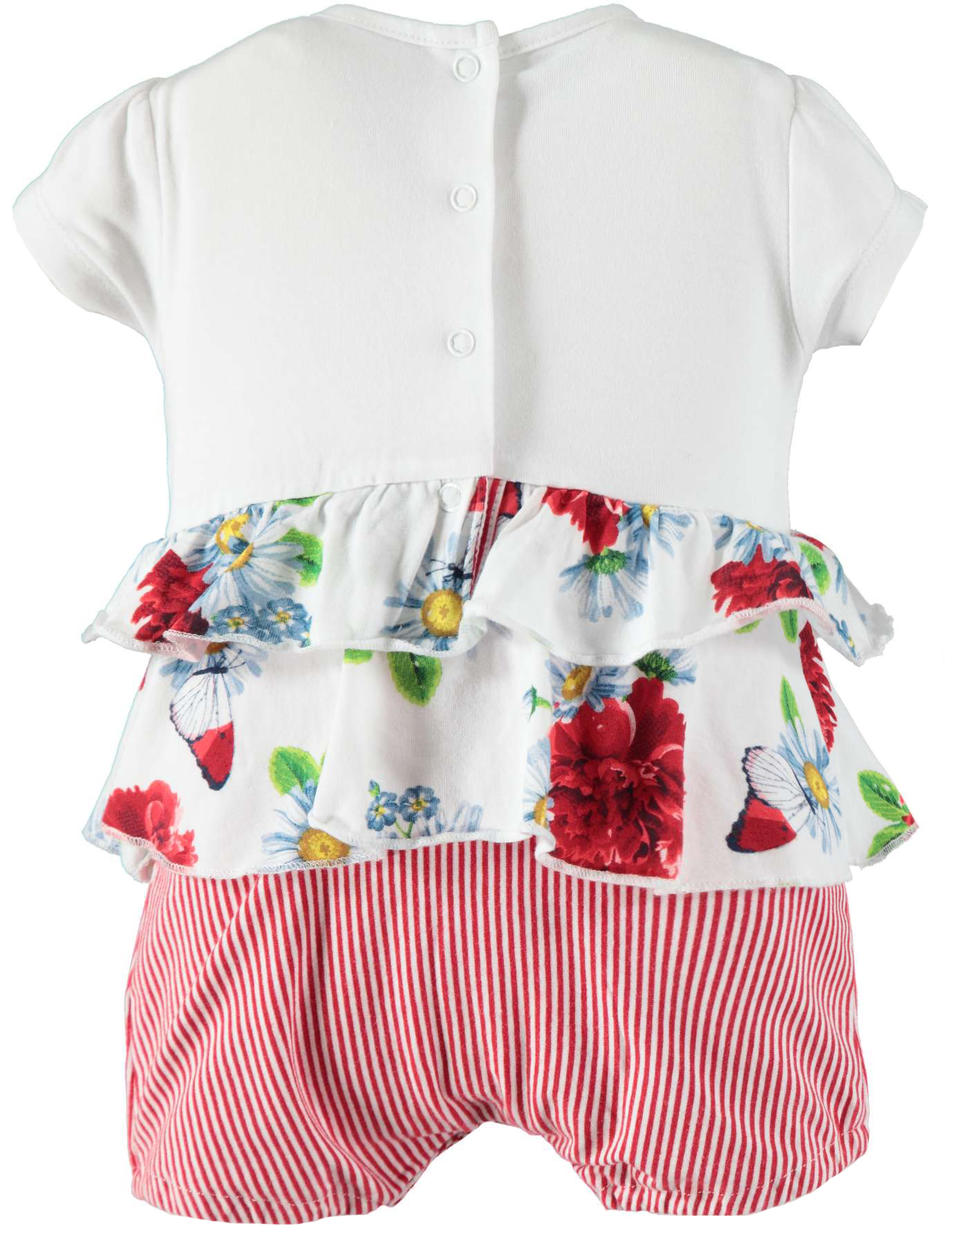 2a5c887b0 Cheerful and colourful baby girl cotton romper suit with butterflies ...